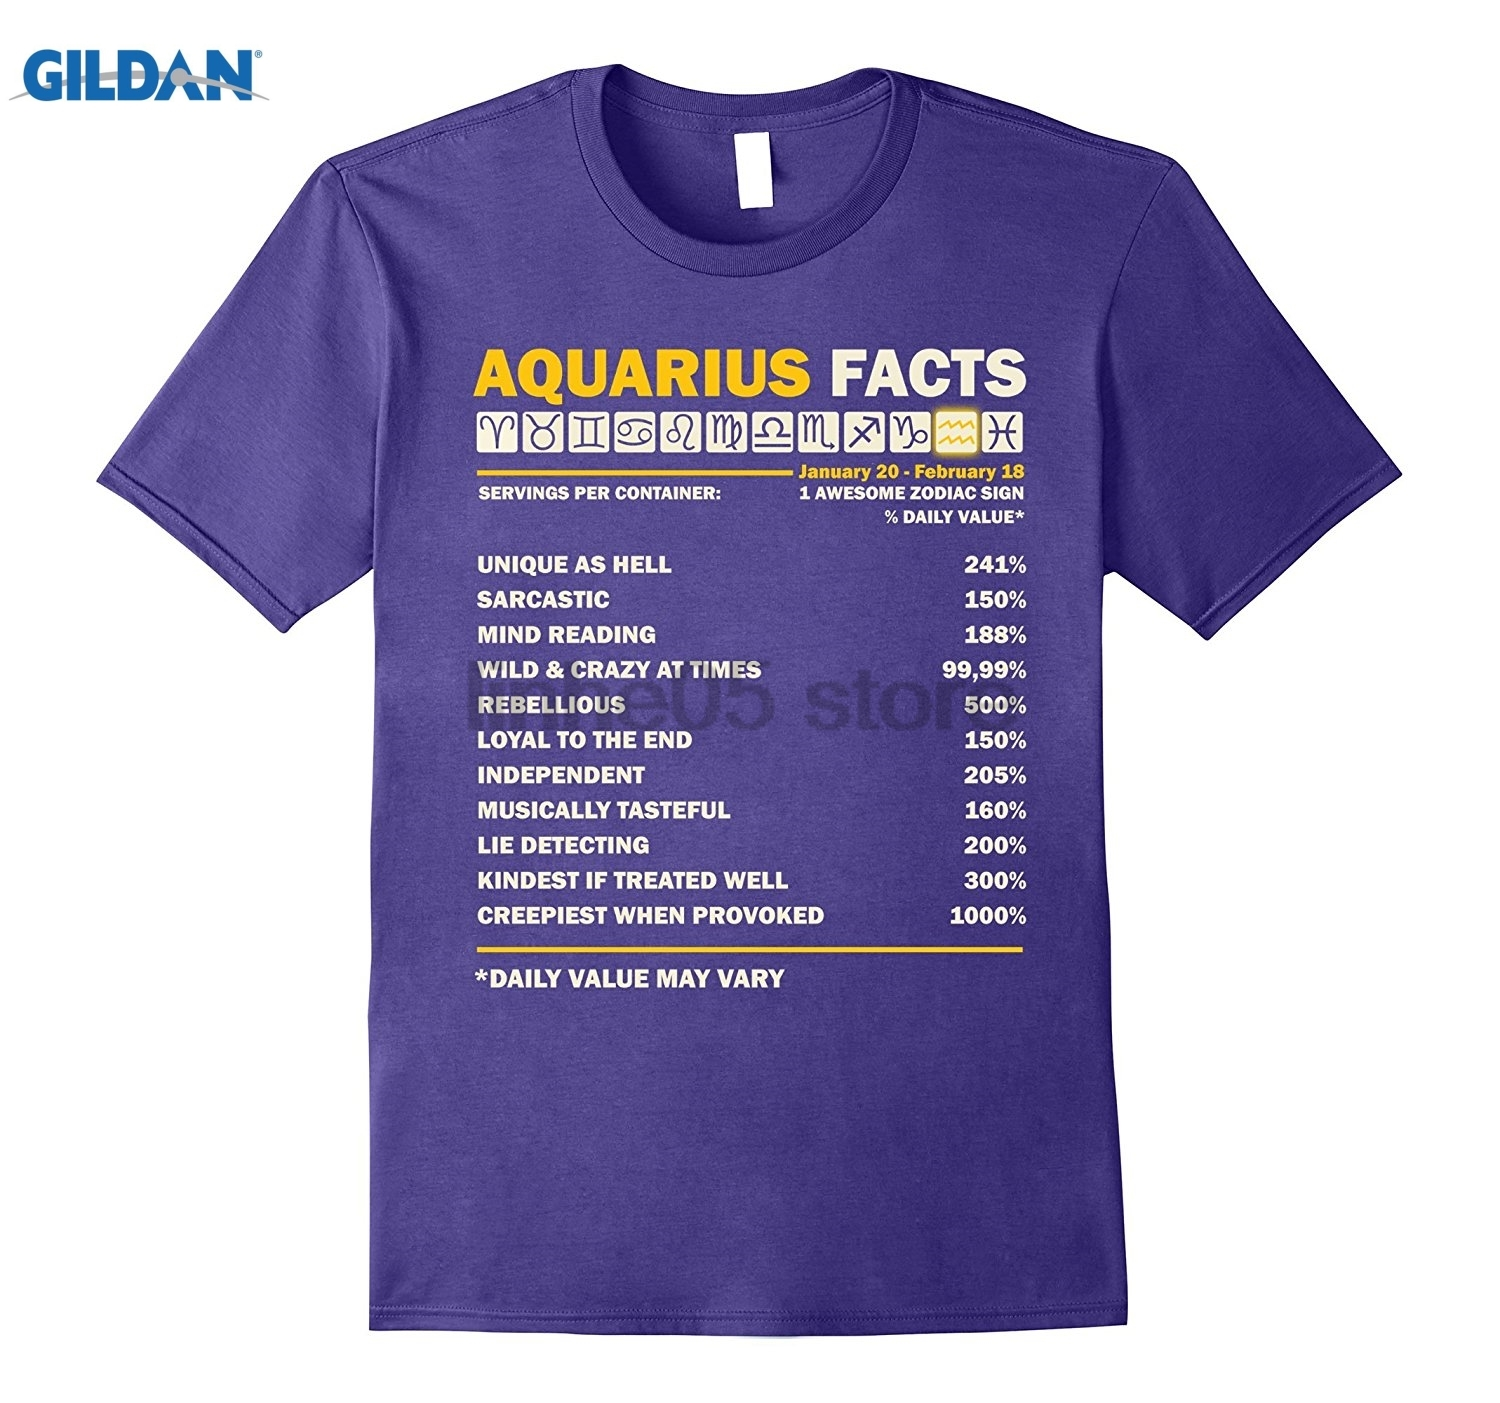 GILDAN Aquarius Facts T Shirt Aquarius Awesome Zodiac Sign Dress female T-shirt ...